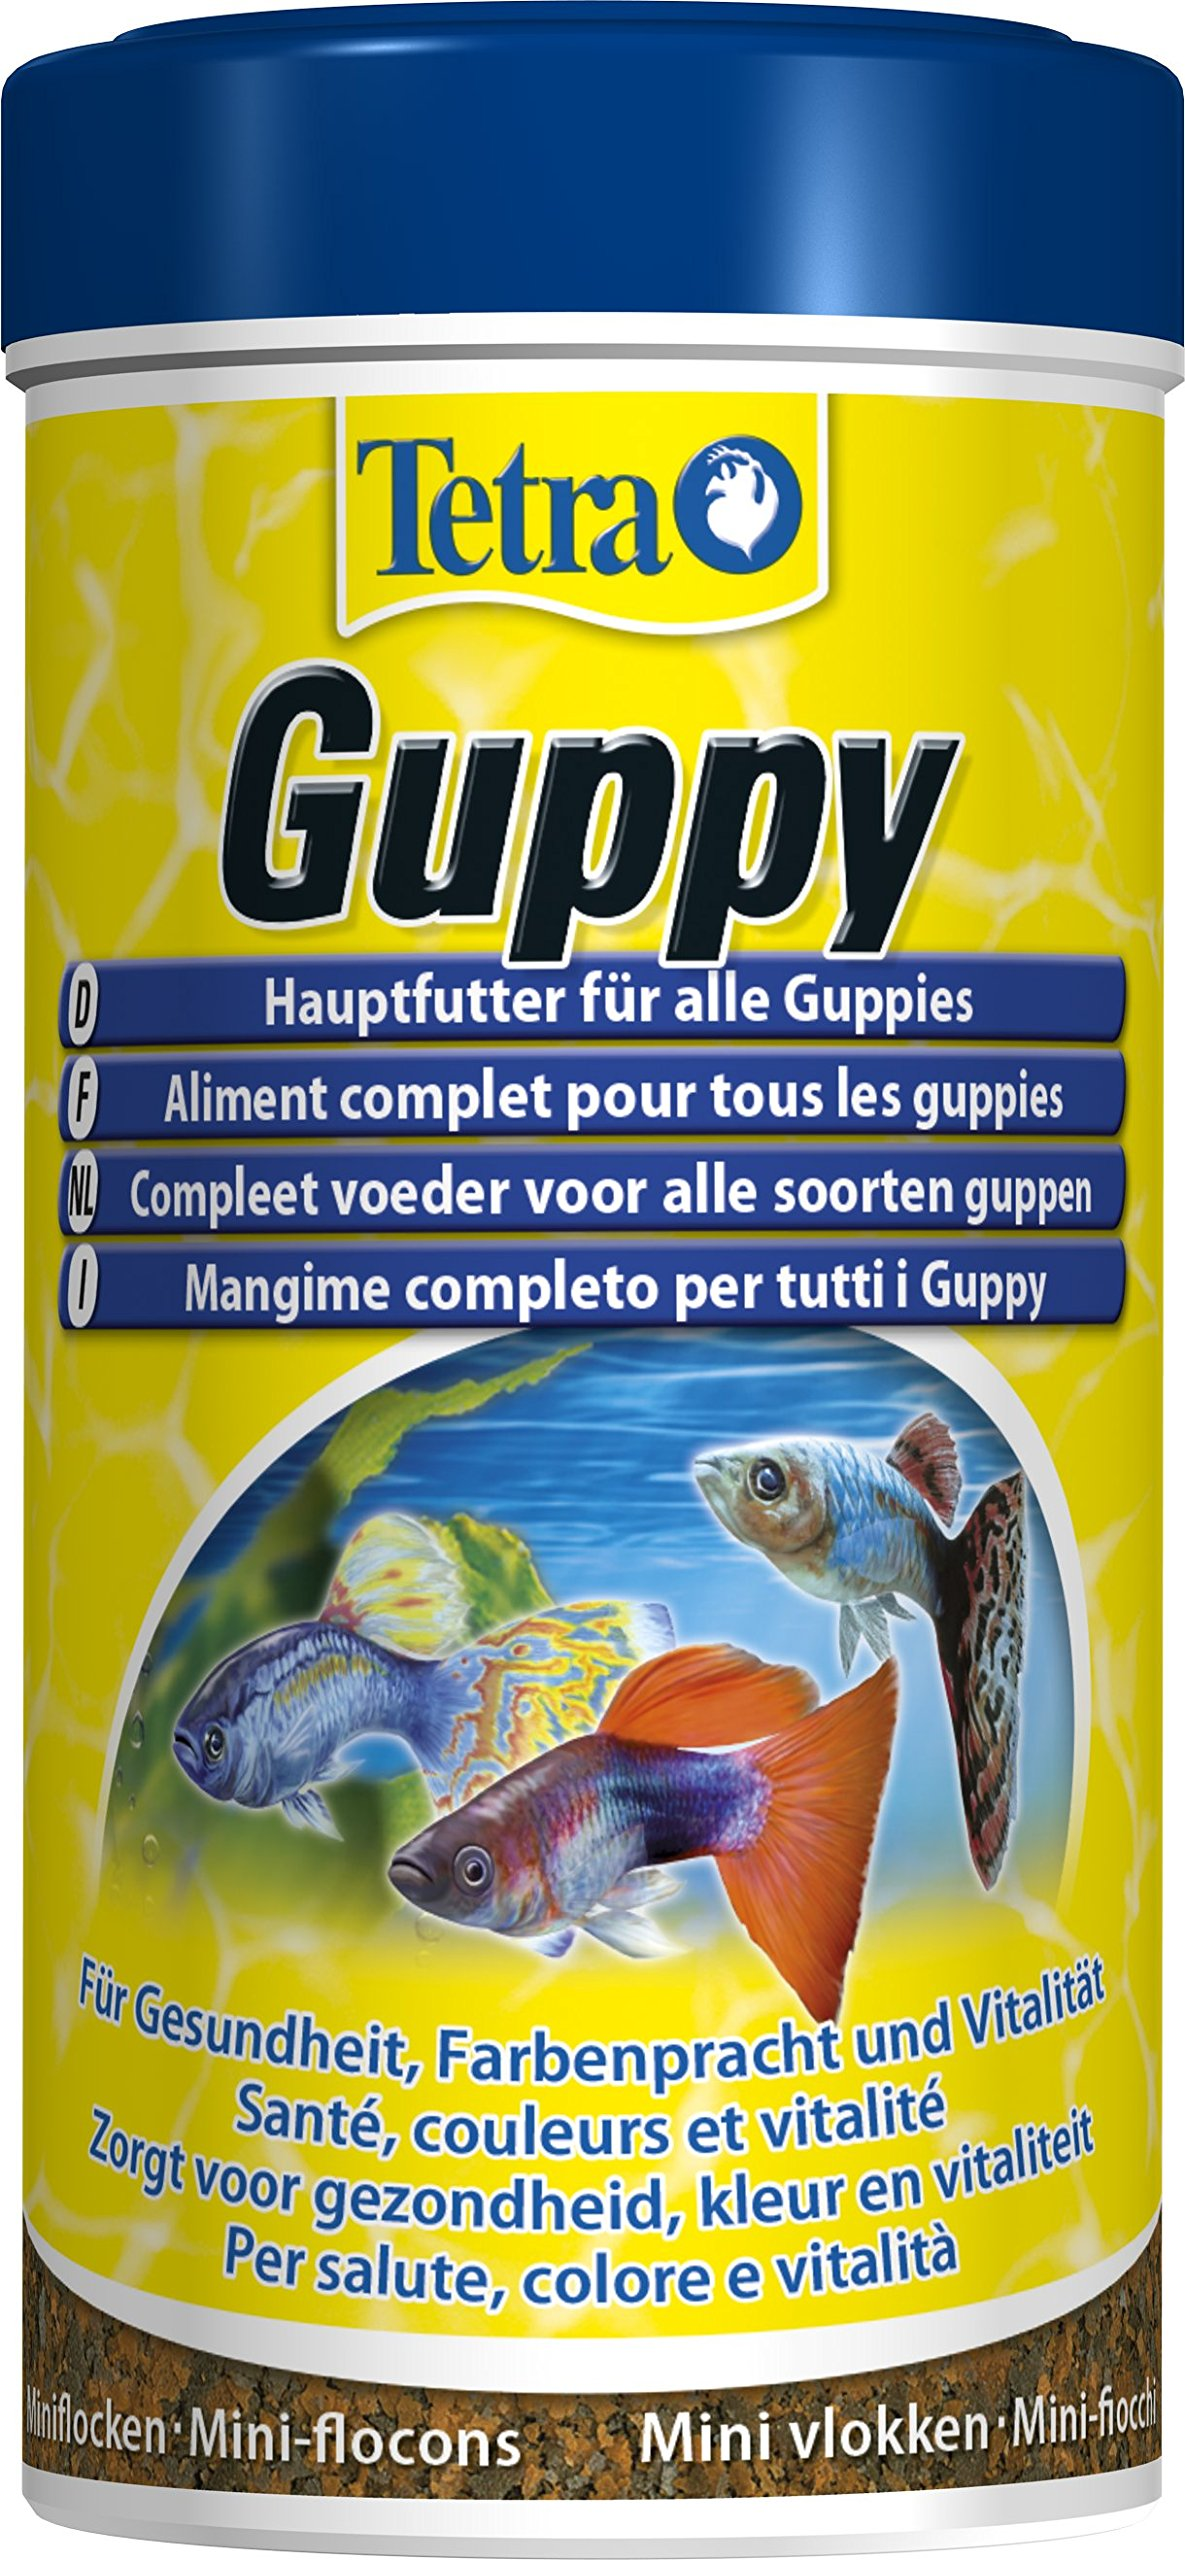 TETRA Guppy - Aliment Complet pour les Guppies - 250ml product image